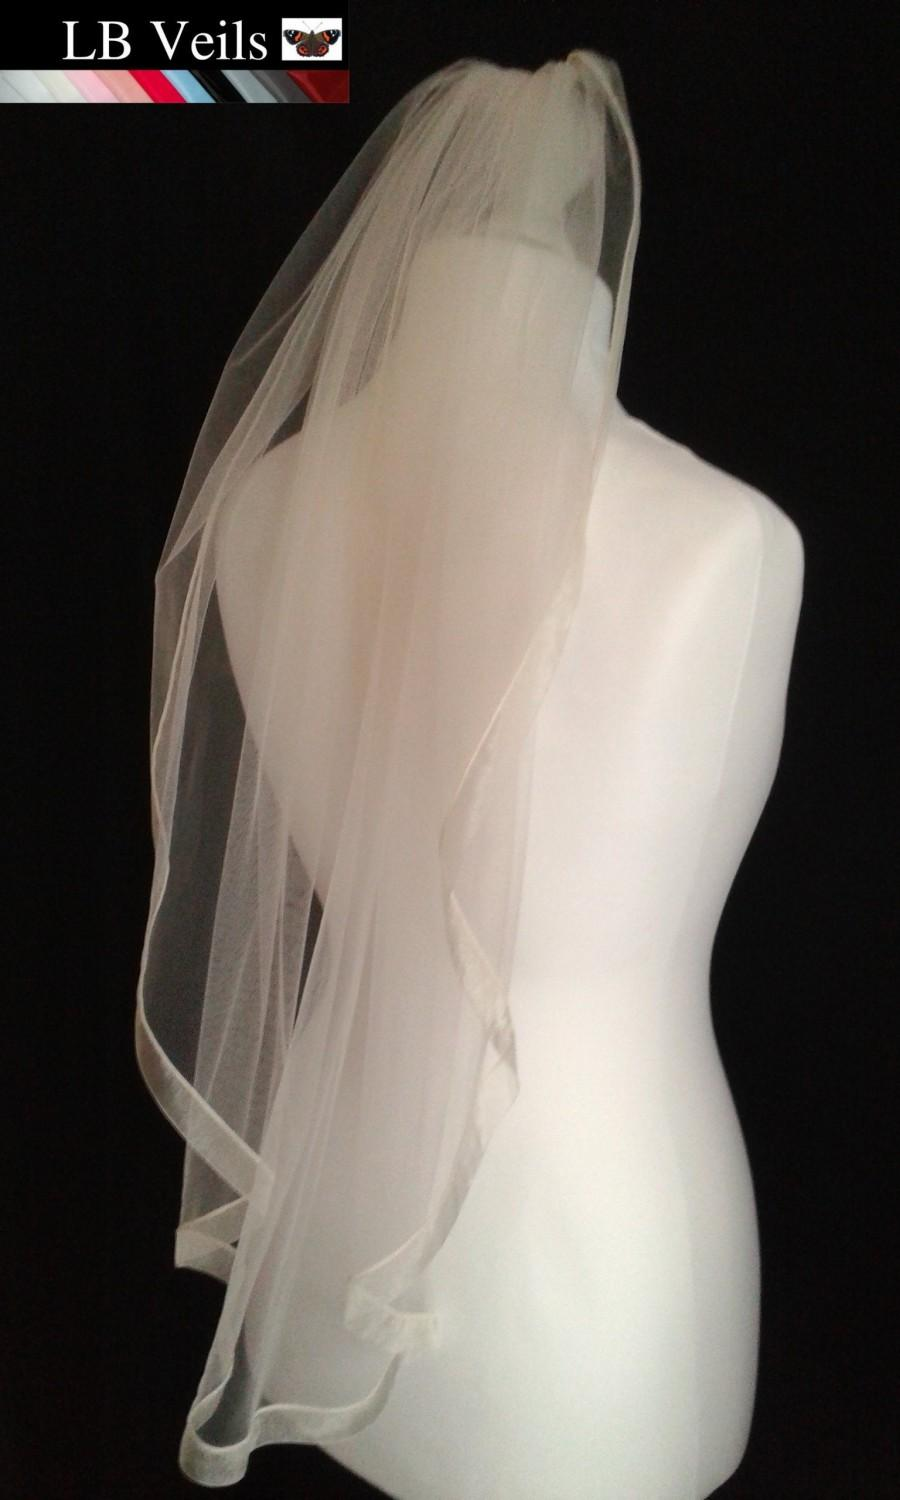 Hochzeit - Wedding, Veil, Beige, Champagne, Ribbon, Edge, 1 Single Tier, Plain, Short, Long, Elbow, Length, Fingertip, Floor, LB Veils LBV183 UK